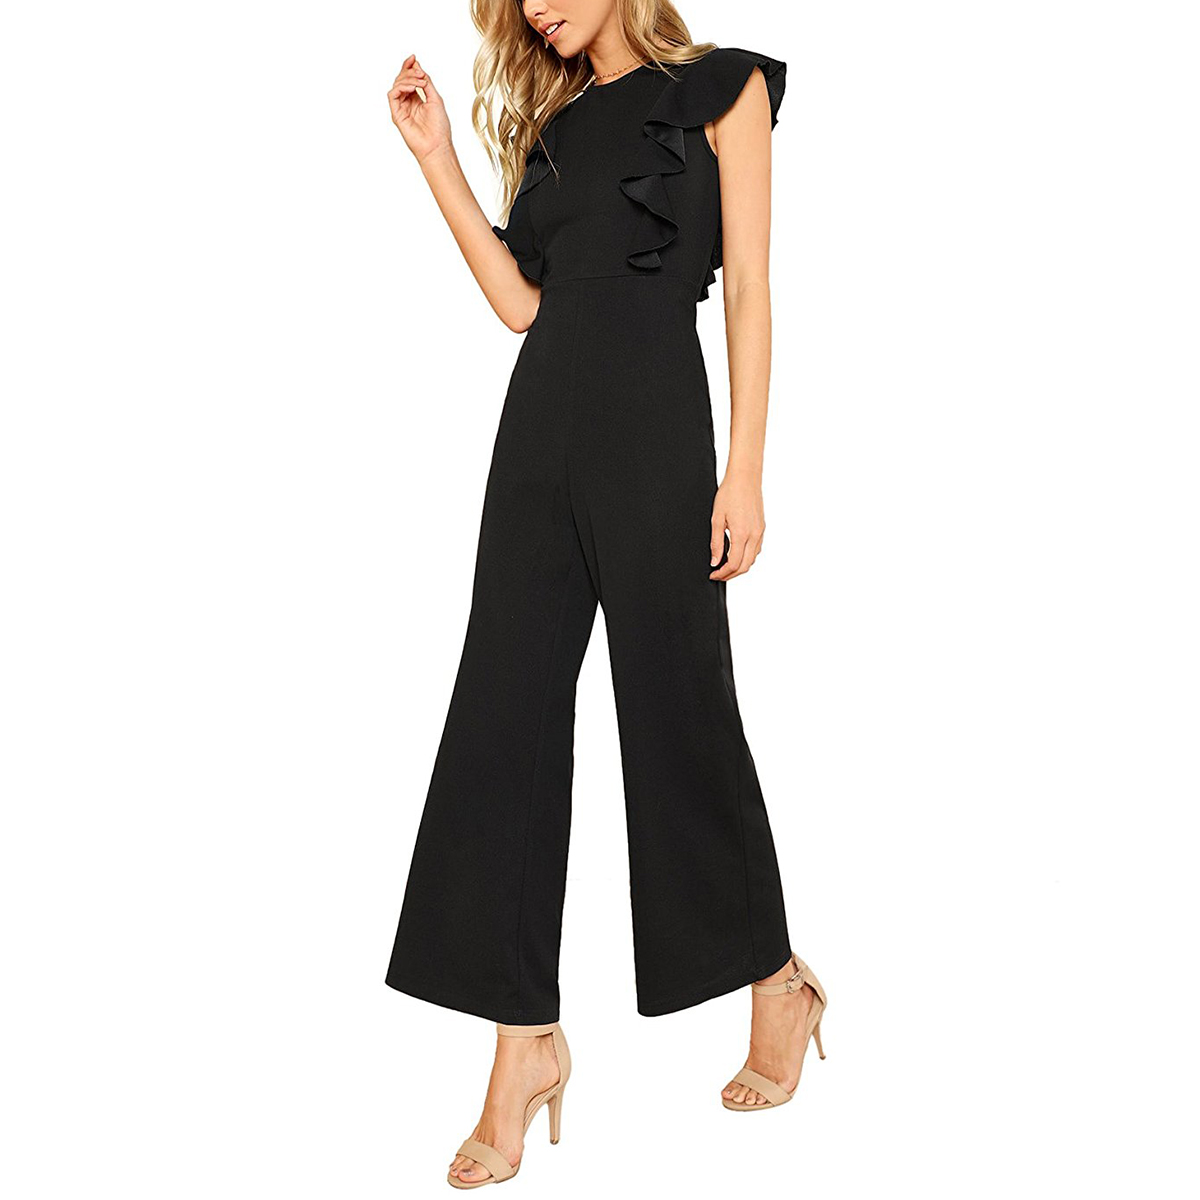 54ab0cd82642 The 17 Best Jumpsuits for Women 2019 | InStyle.com